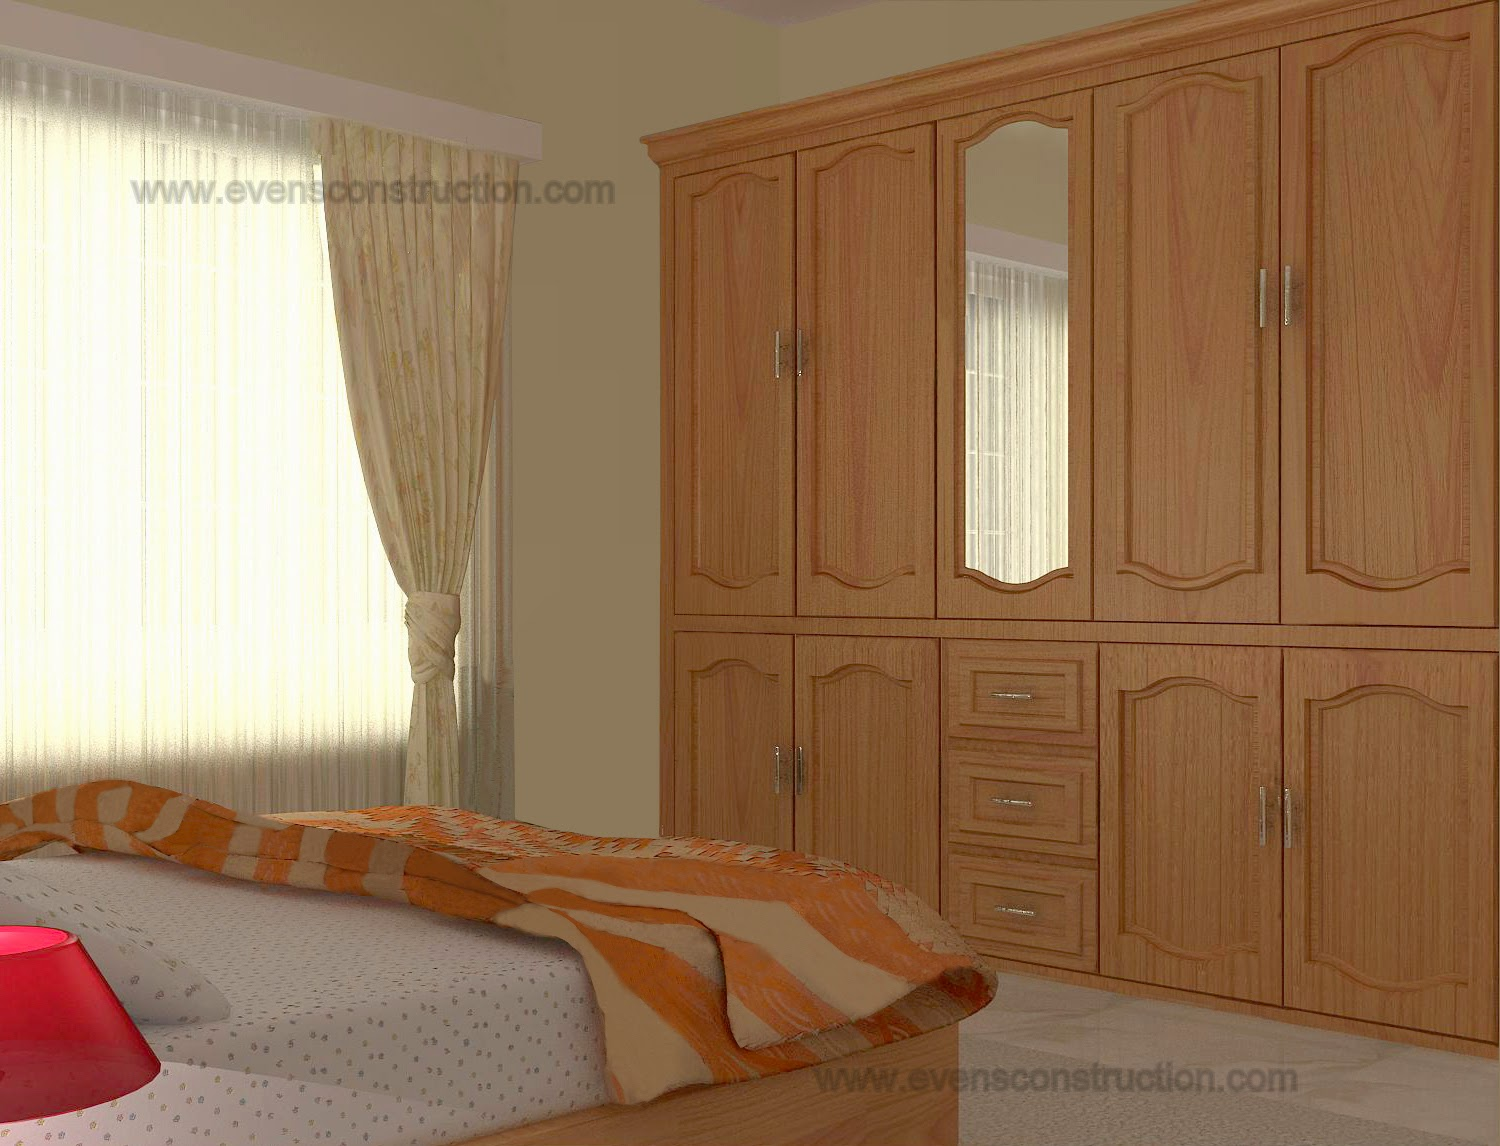 Evens construction pvt ltd kerala bedroom interior design for Wooden interior design for bedroom